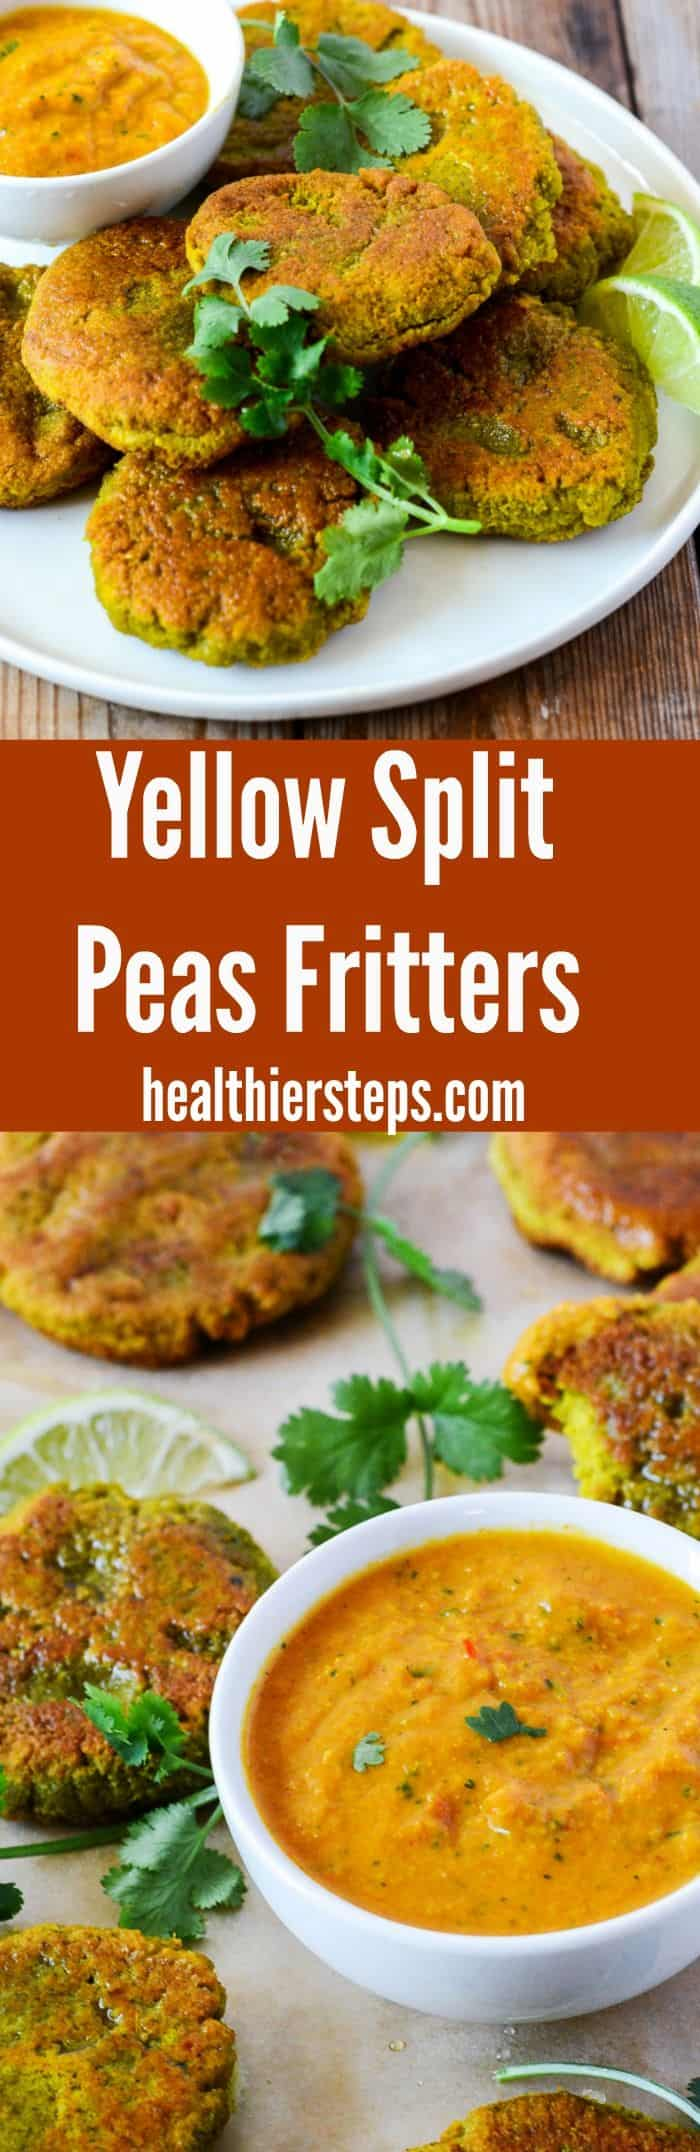 Yellow Split Peas Fritters